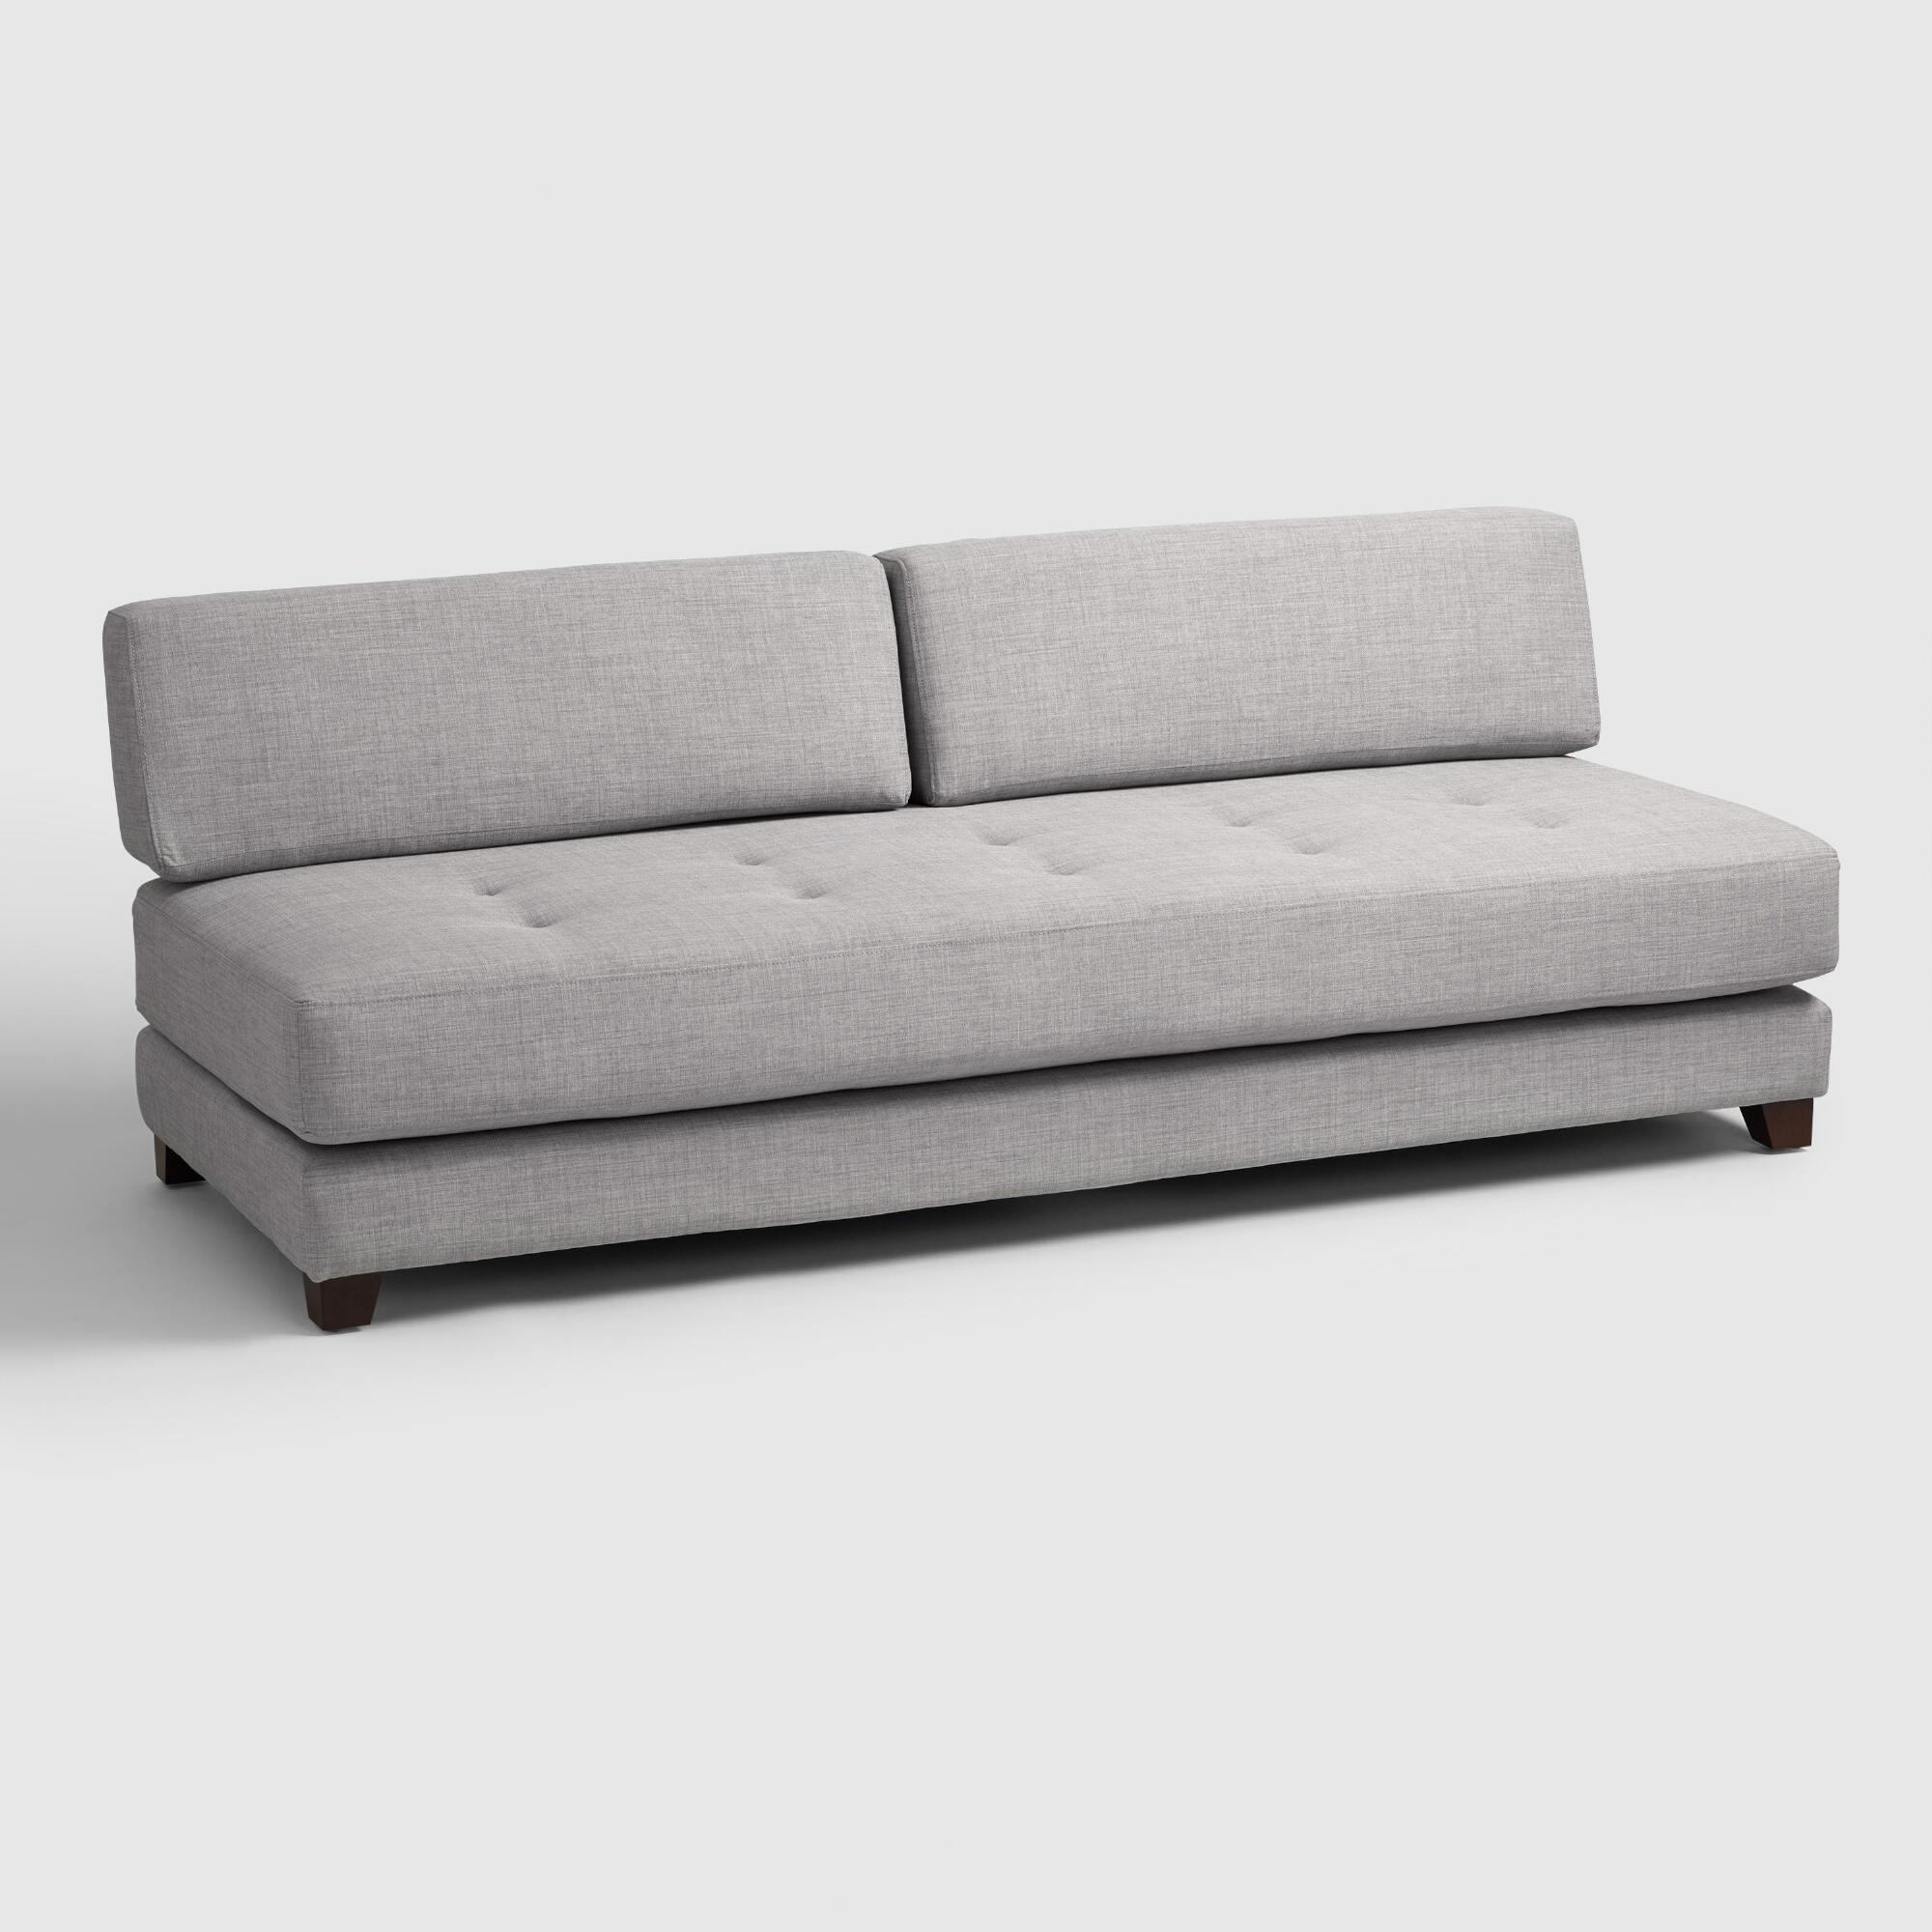 Daybed sofa couch - Light Gray Hartley Upholstered Duet Daybed